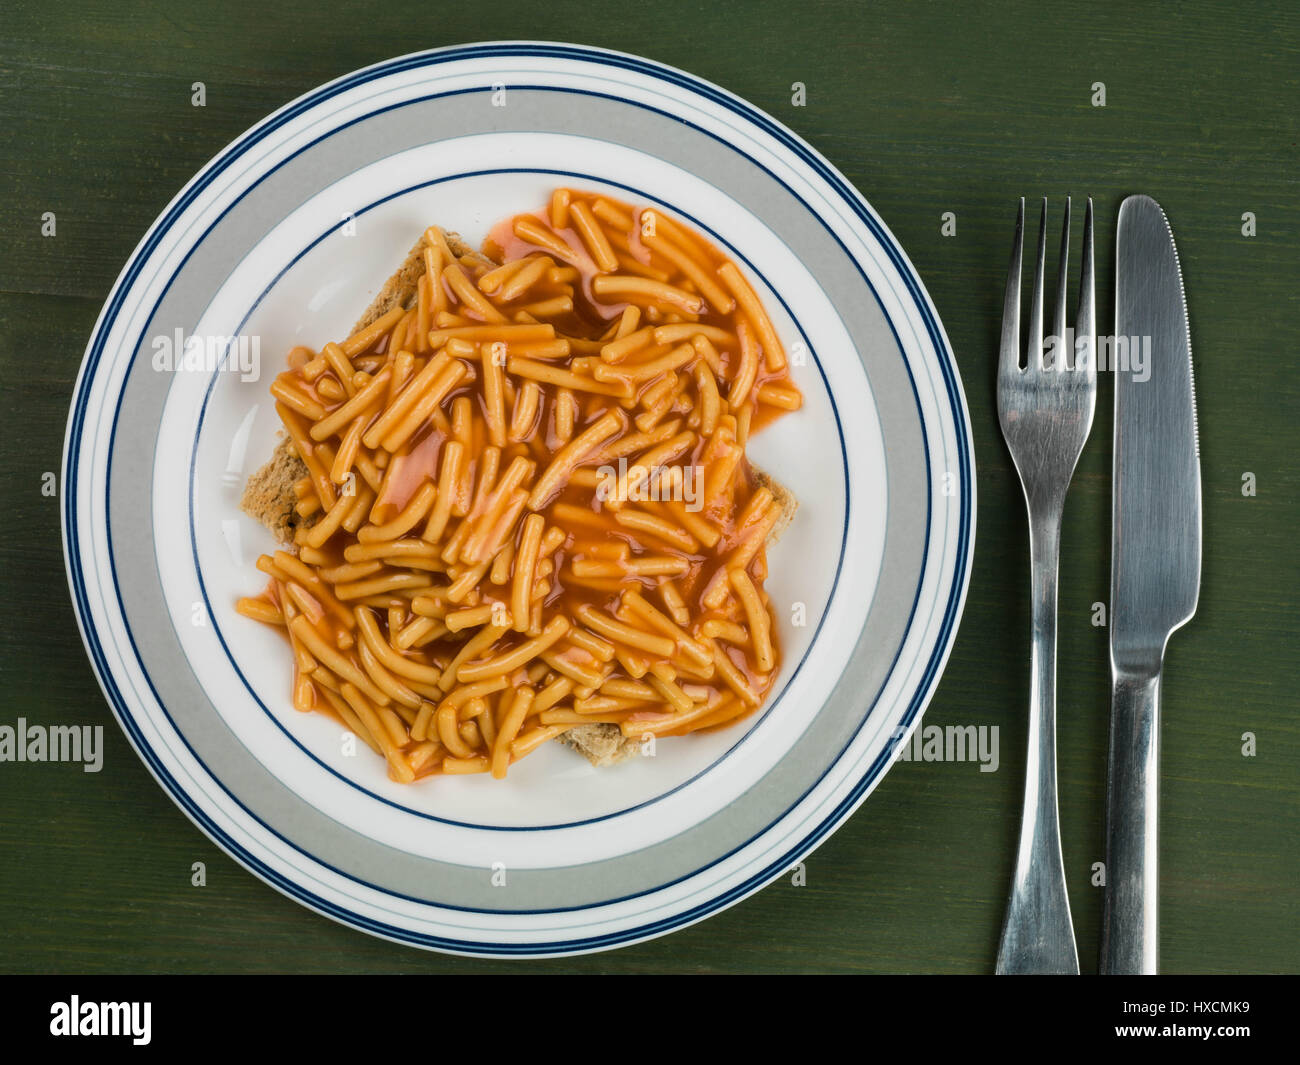 Spaghetti on Toasted Bread Served on a Plate Against a Green background - Stock Image